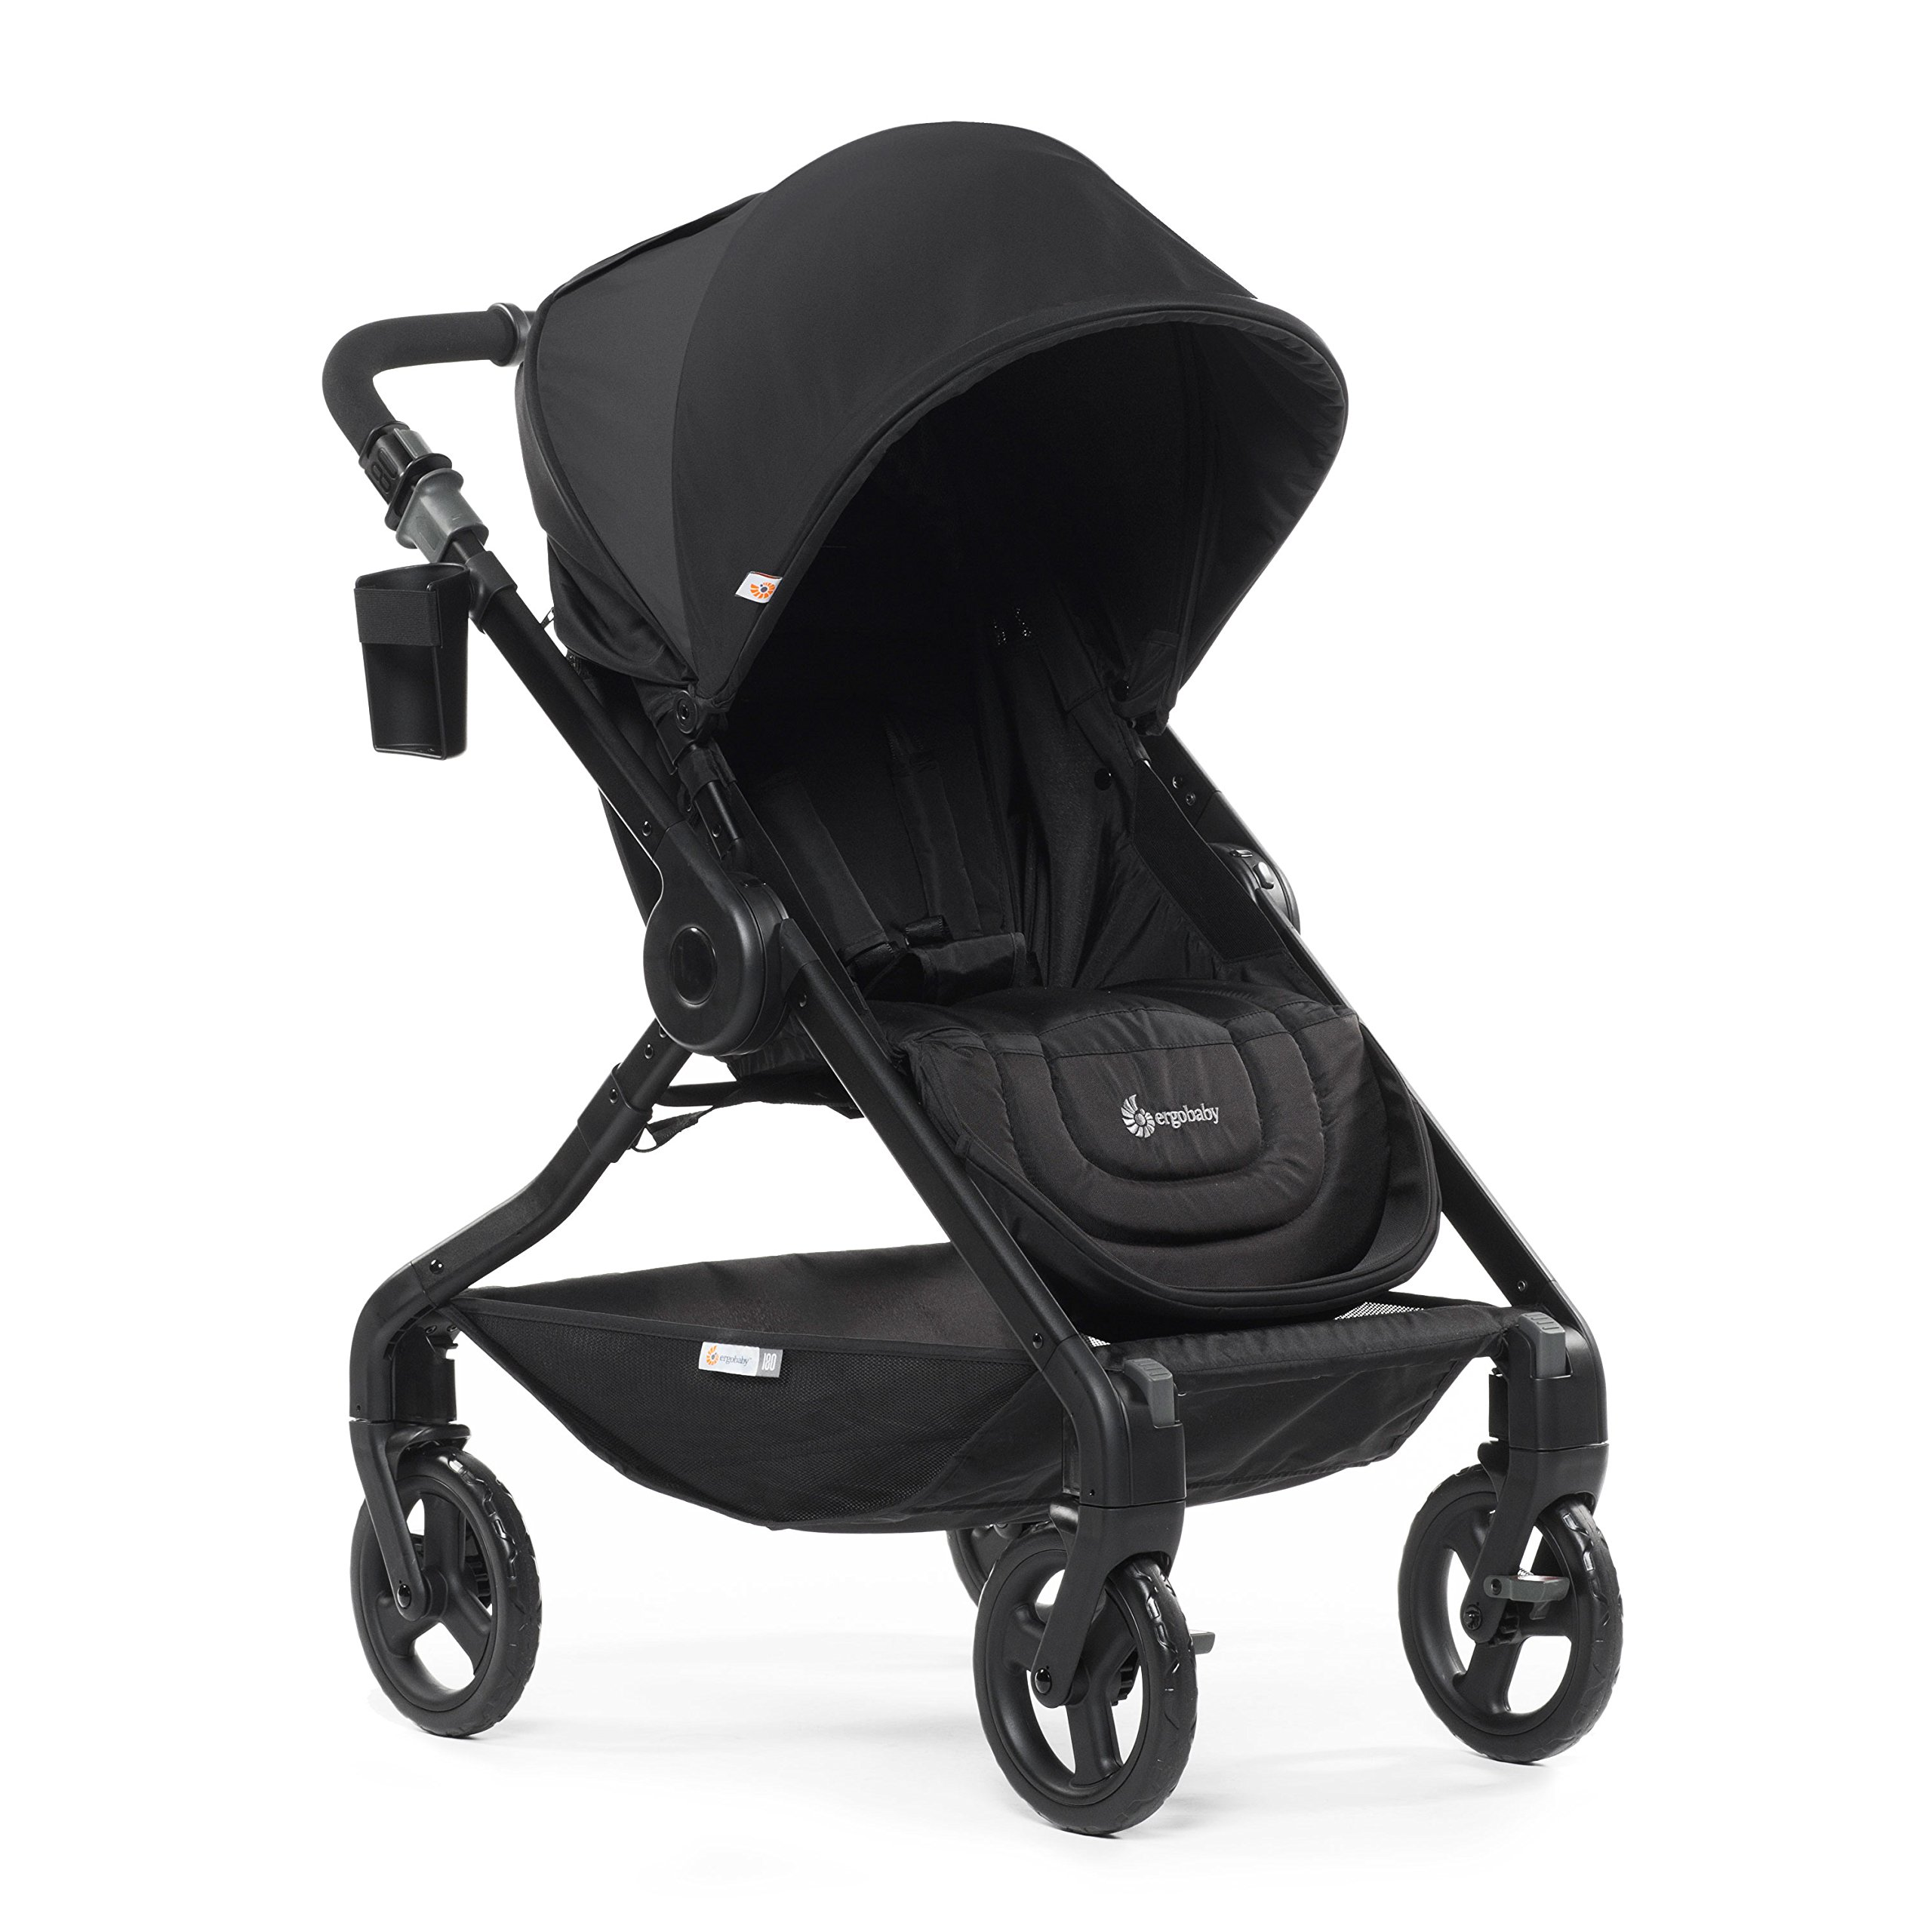 Ergobaby Stroller, Travel System Ready, 180 Reversible with One-Hand Fold, Black by Ergobaby